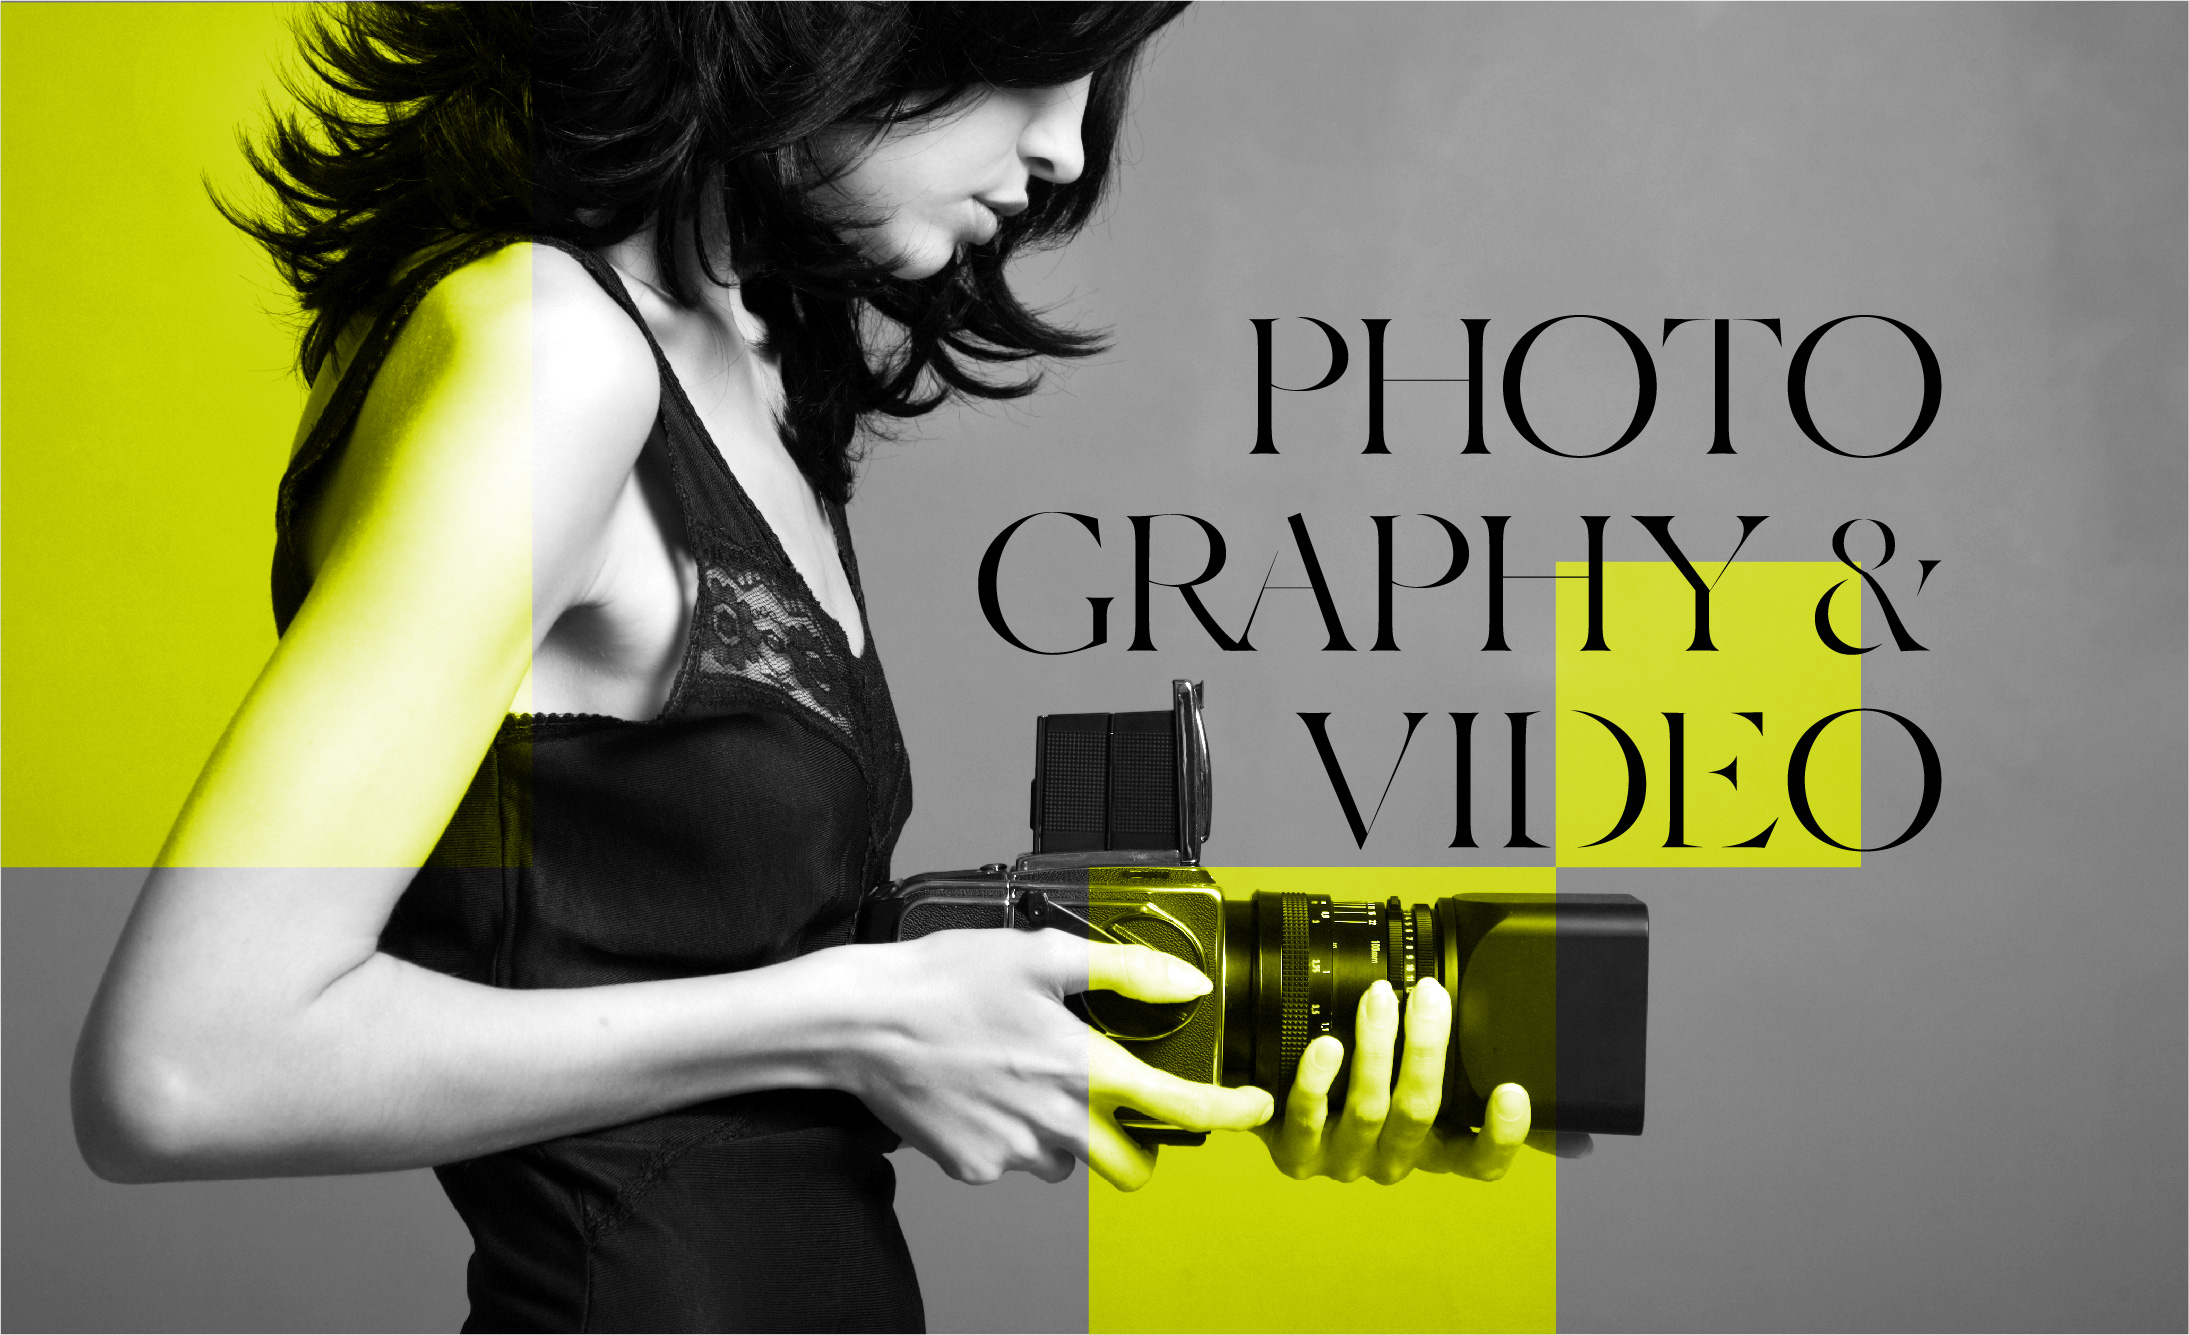 PHOTO GRAPHY & VIDEO